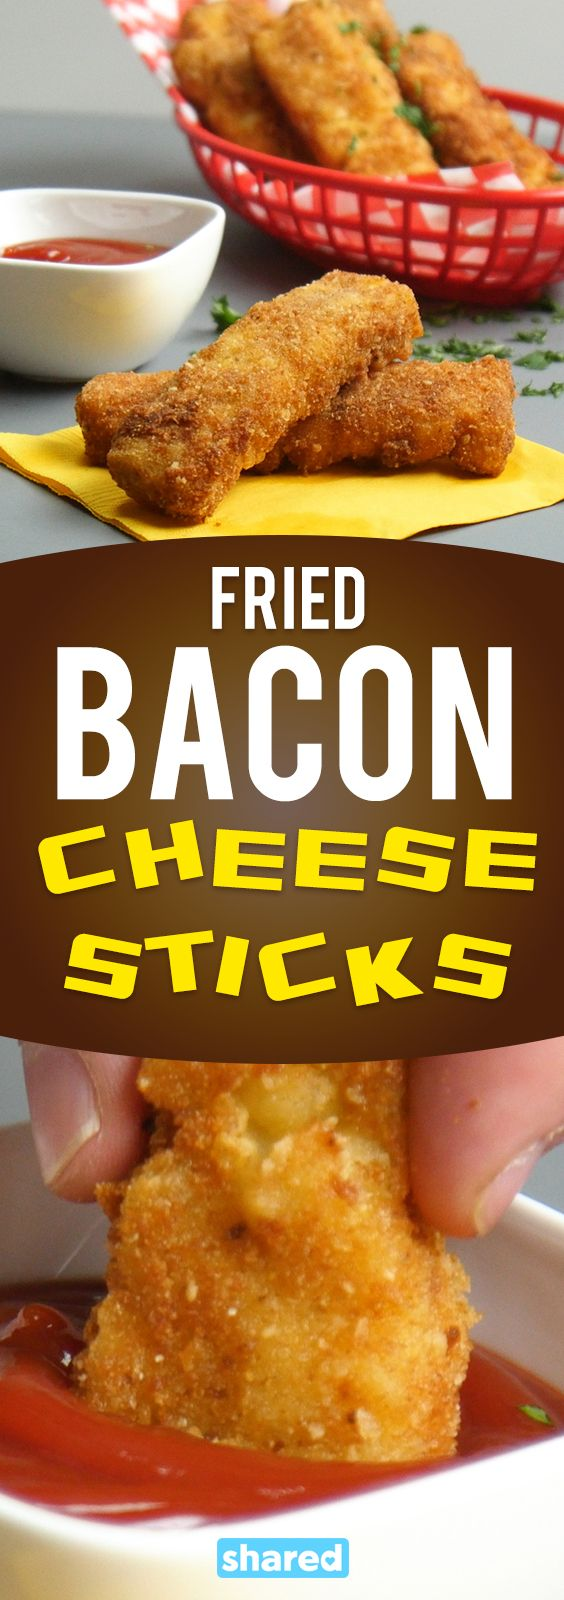 Move over mozzarella sticks, there's a new sheriff in town! Fried Bacon Mac and Cheese Sticks are the best thing since...well, a lot of things! These may sound complicated, but it's actually super easy to fry up these cheesy sticks. With the added saltiness from the bacon and ooey gooey cheese, this is an appetizer for the books! Serve with ketchup or marinara sauce for a dippable feast!